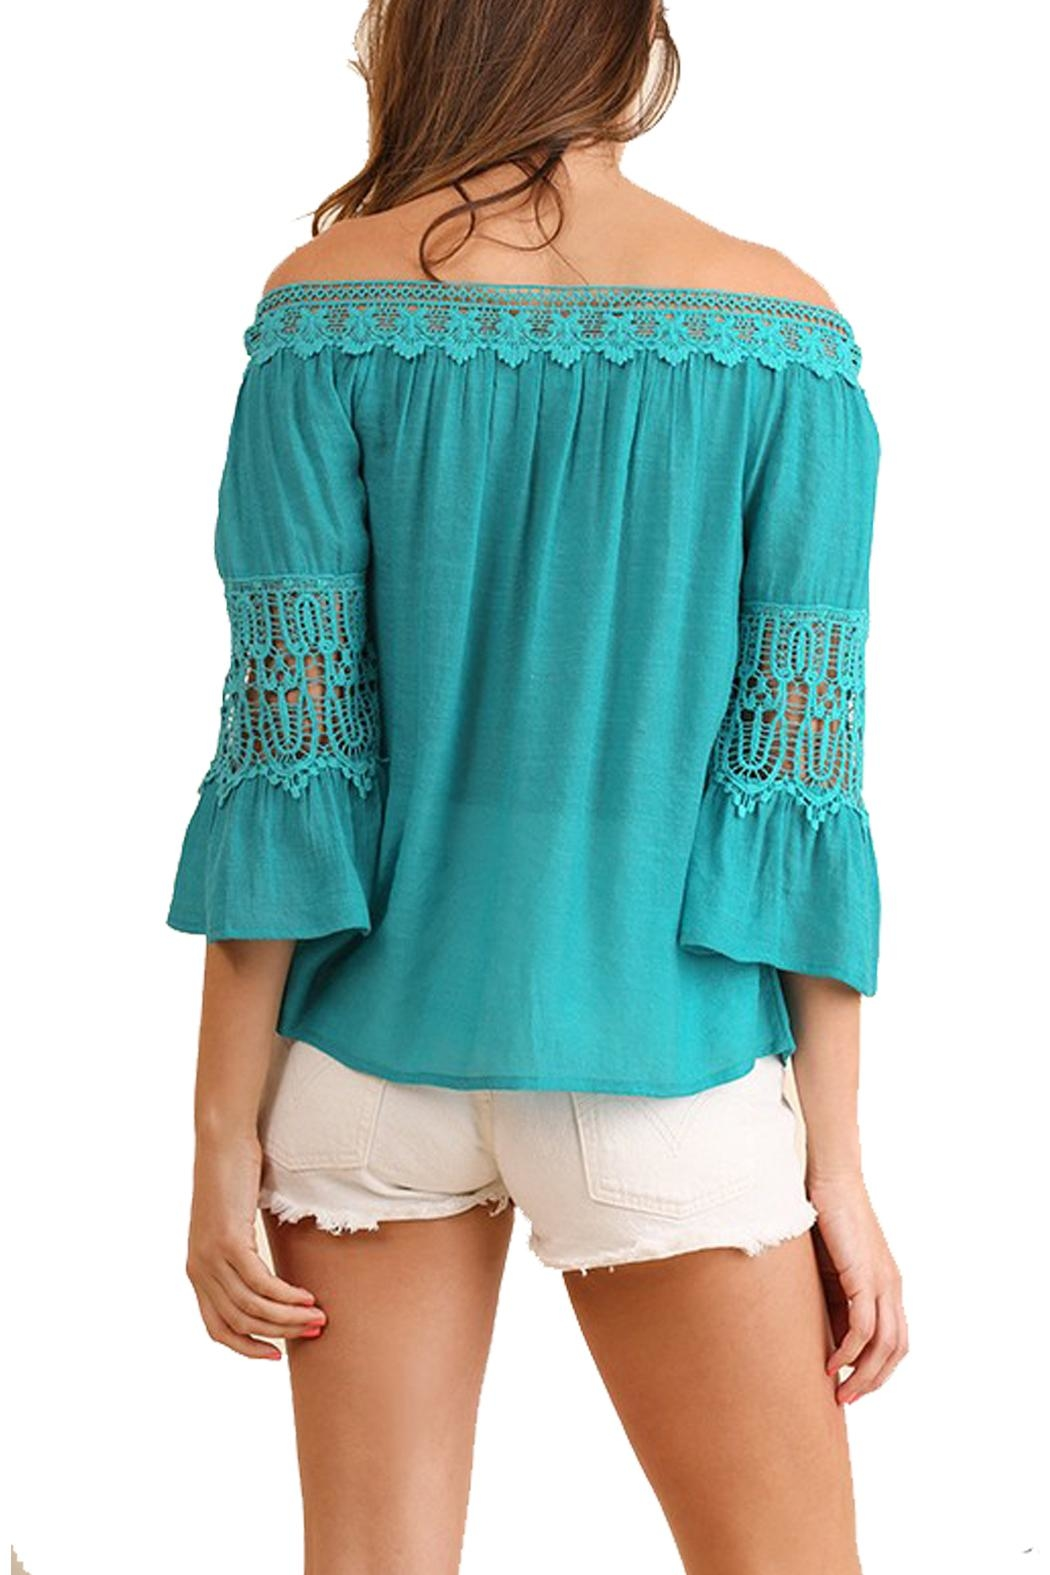 Umgee USA Teal Off-The-Shoulder Top - Side Cropped Image